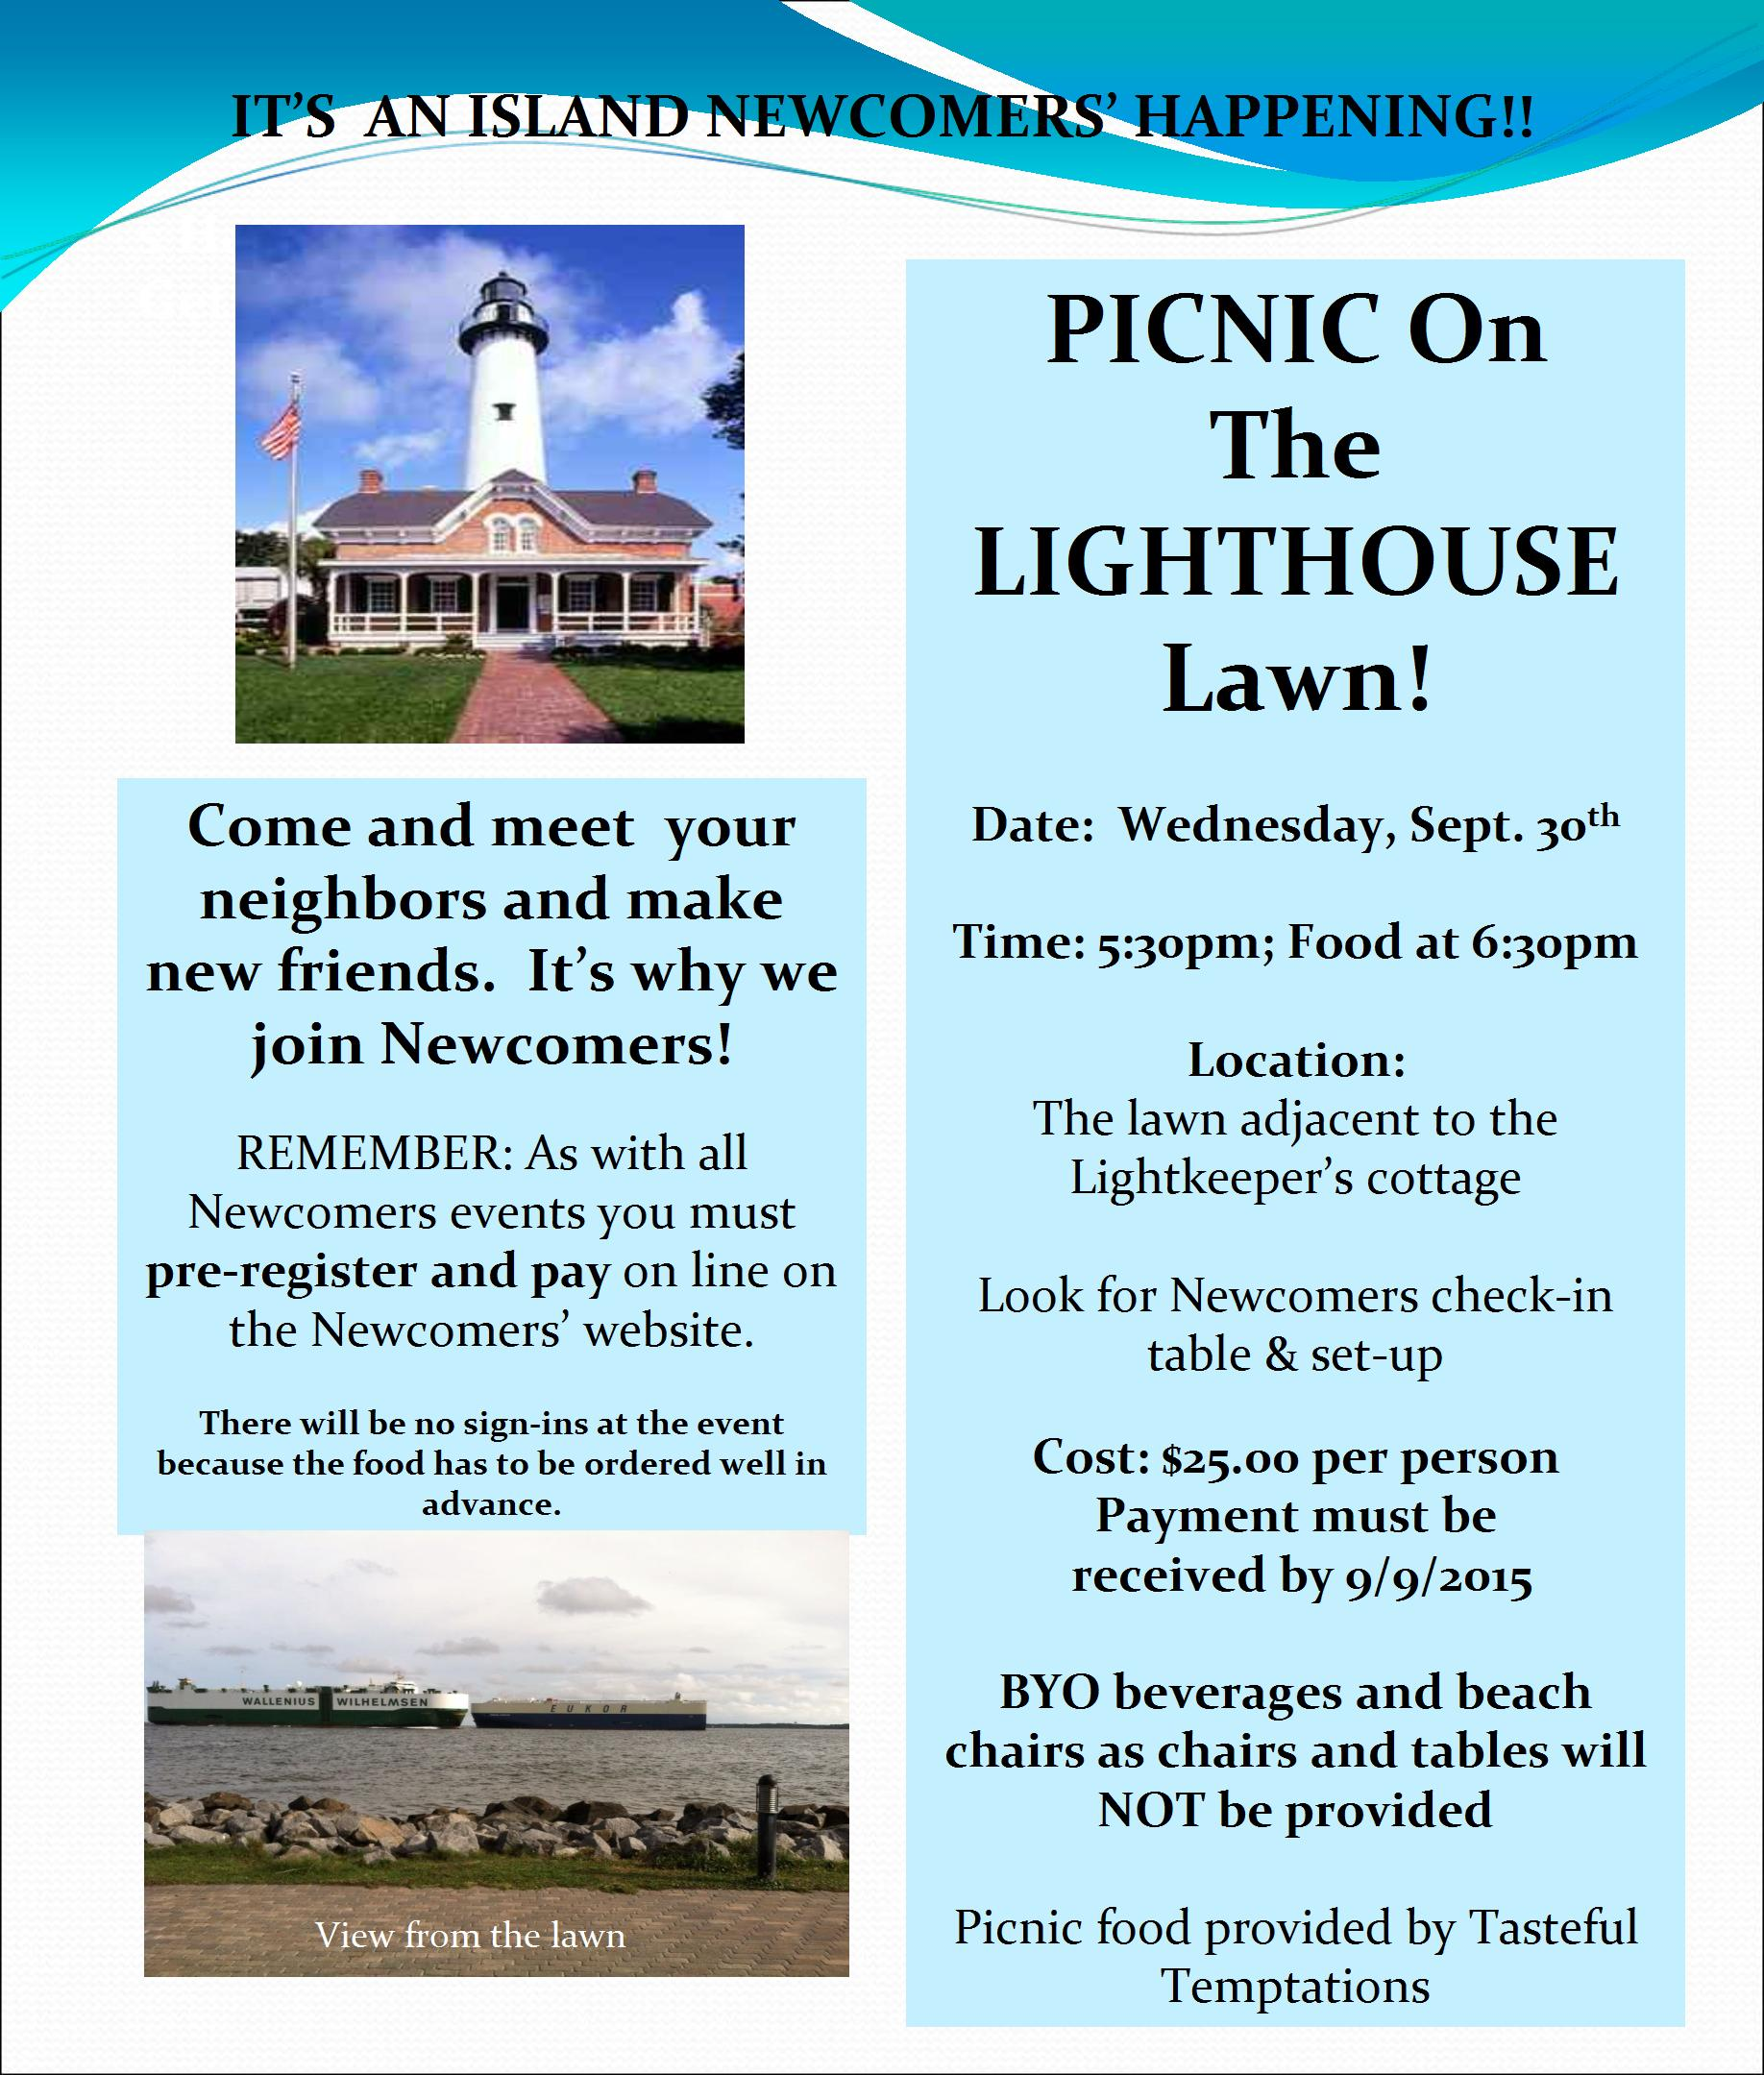 Newcomers-Lighthouse Picnic-revised--9-14